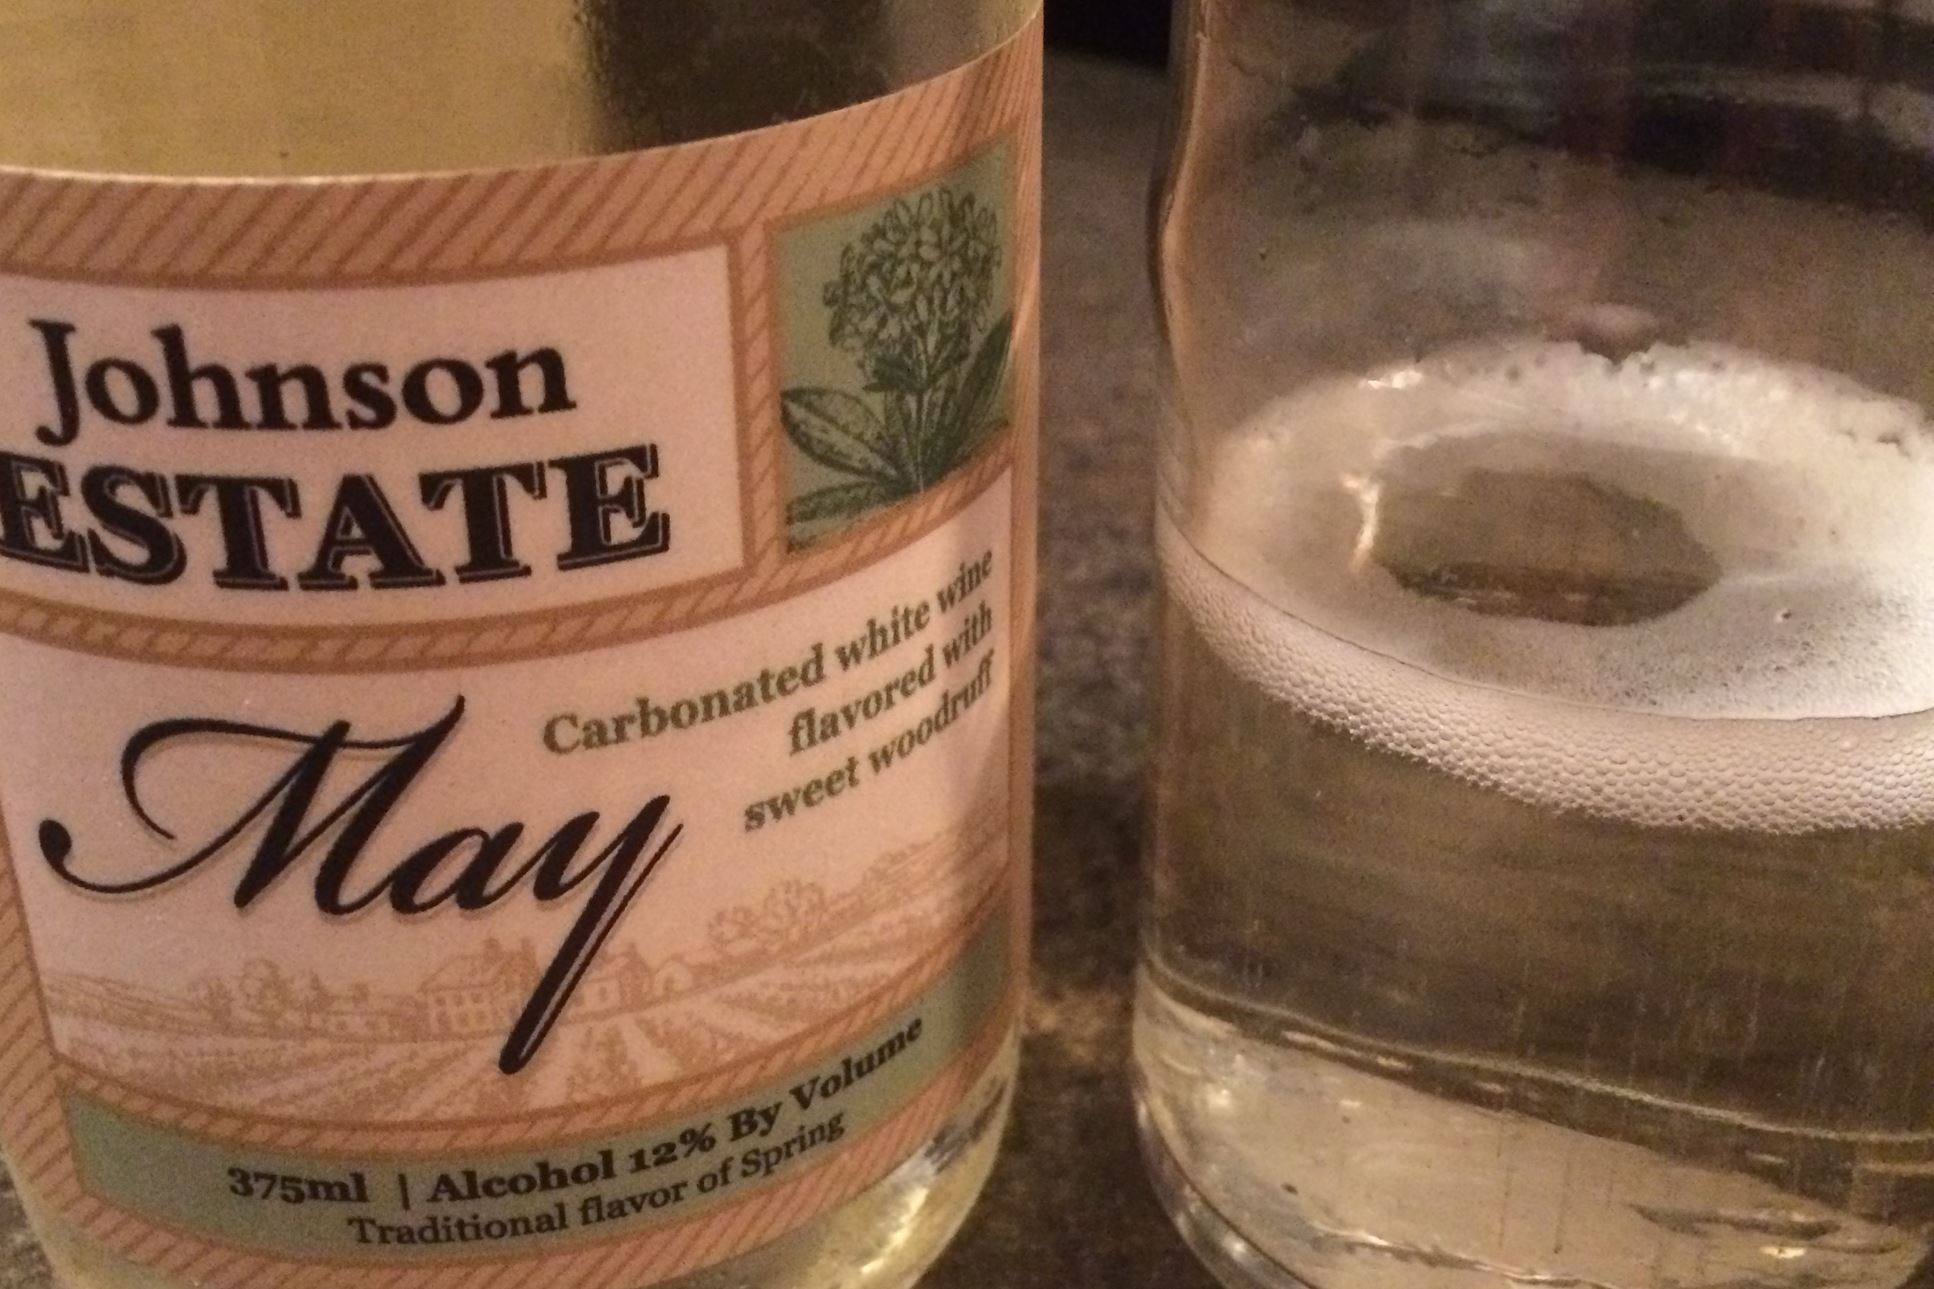 johnson Johnson Estate Winery's May wine is a carbonated sweet white infused with sweet woodruff.